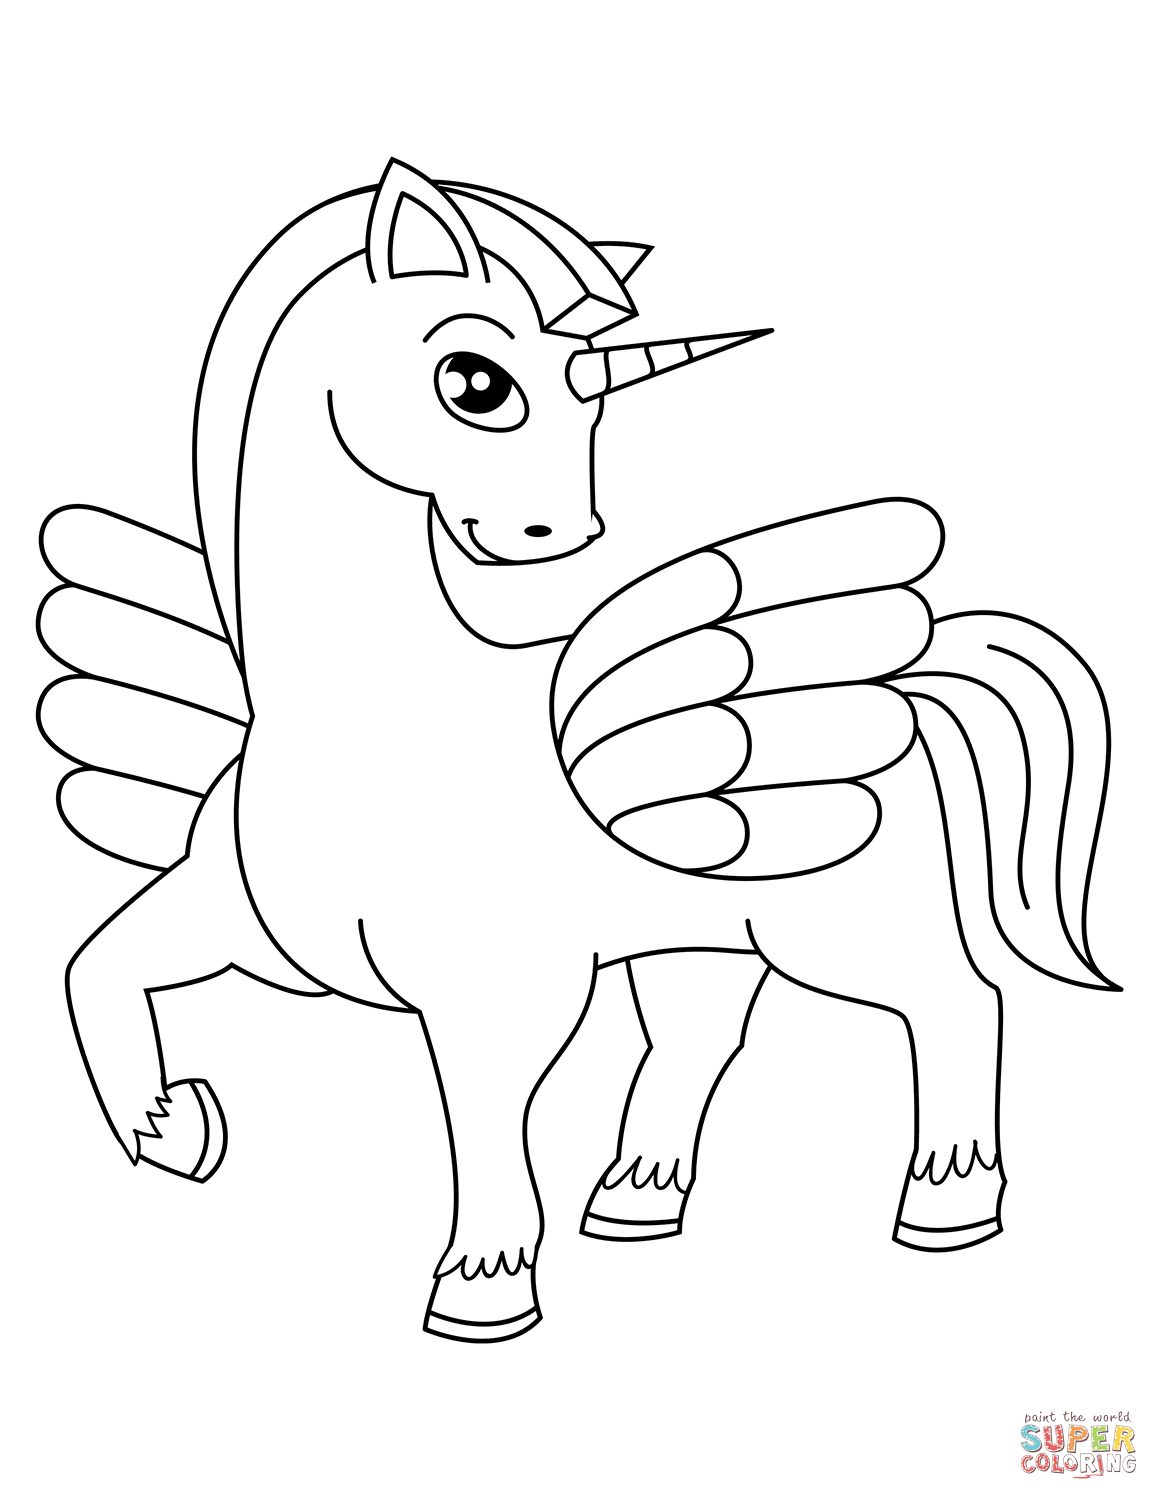 Unicorn Coloring Pages | Free Coloring Pages - Free Printable Unicorn Coloring Pages